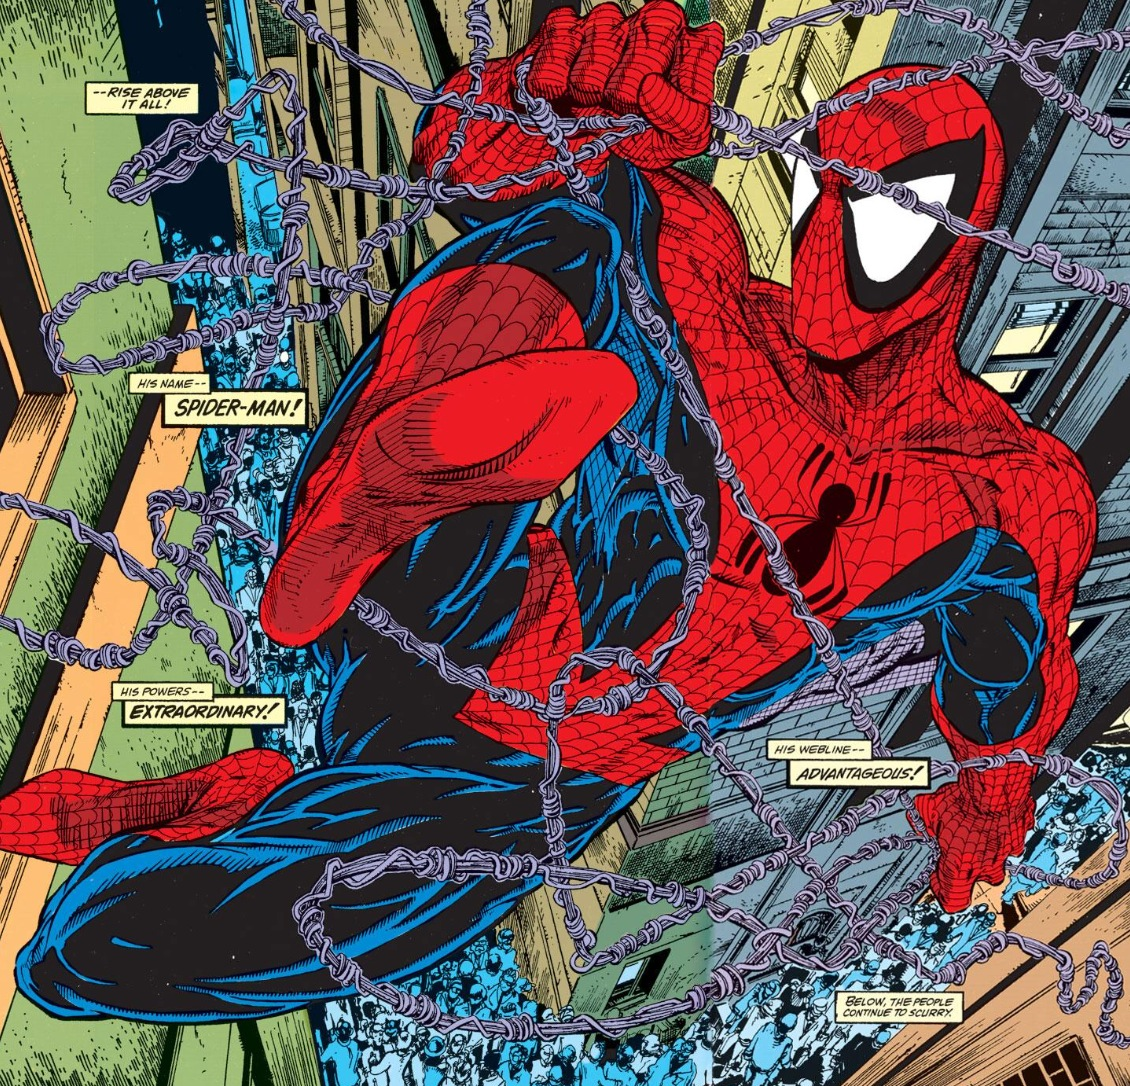 picture pages todd mcfarlane spider man art. Black Bedroom Furniture Sets. Home Design Ideas